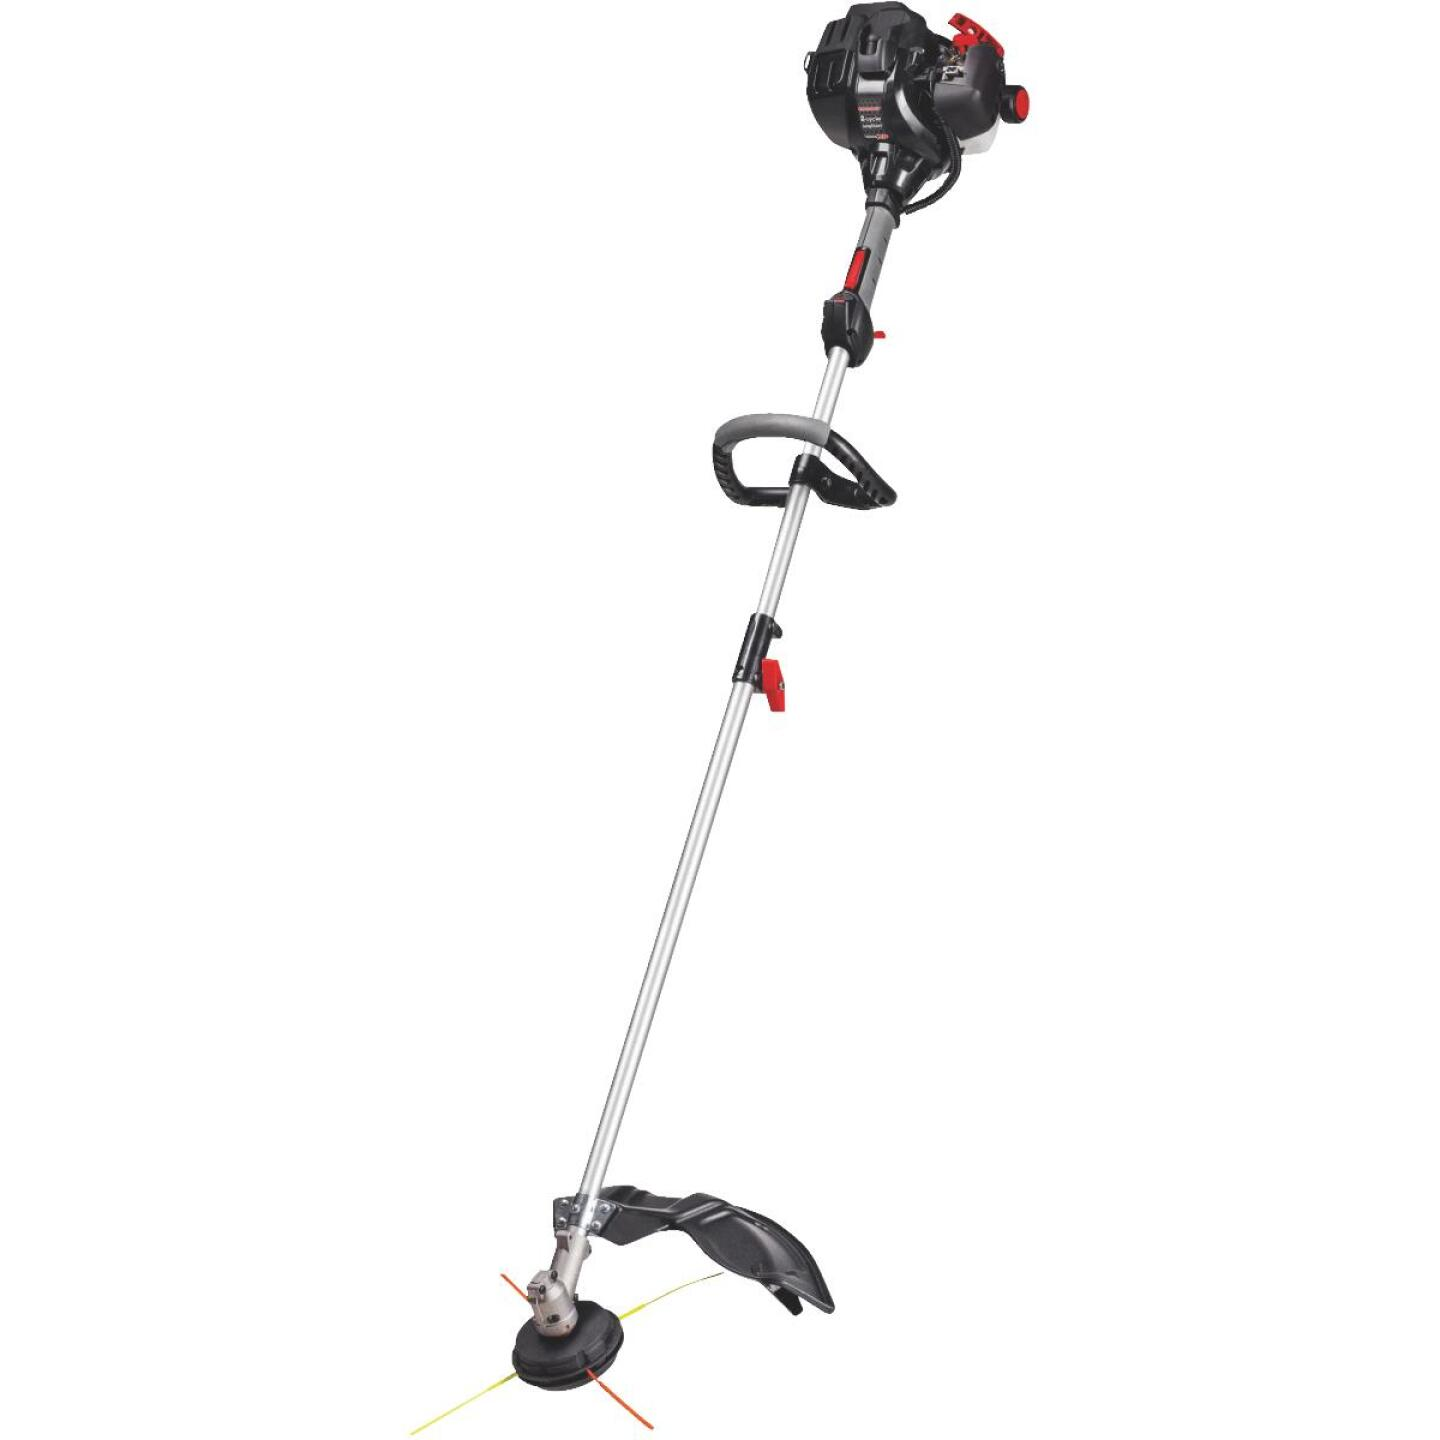 Troy-Bilt TB2044XP 18 In. 27CC 2-Cycle Straight Gas String Trimmer Image 3